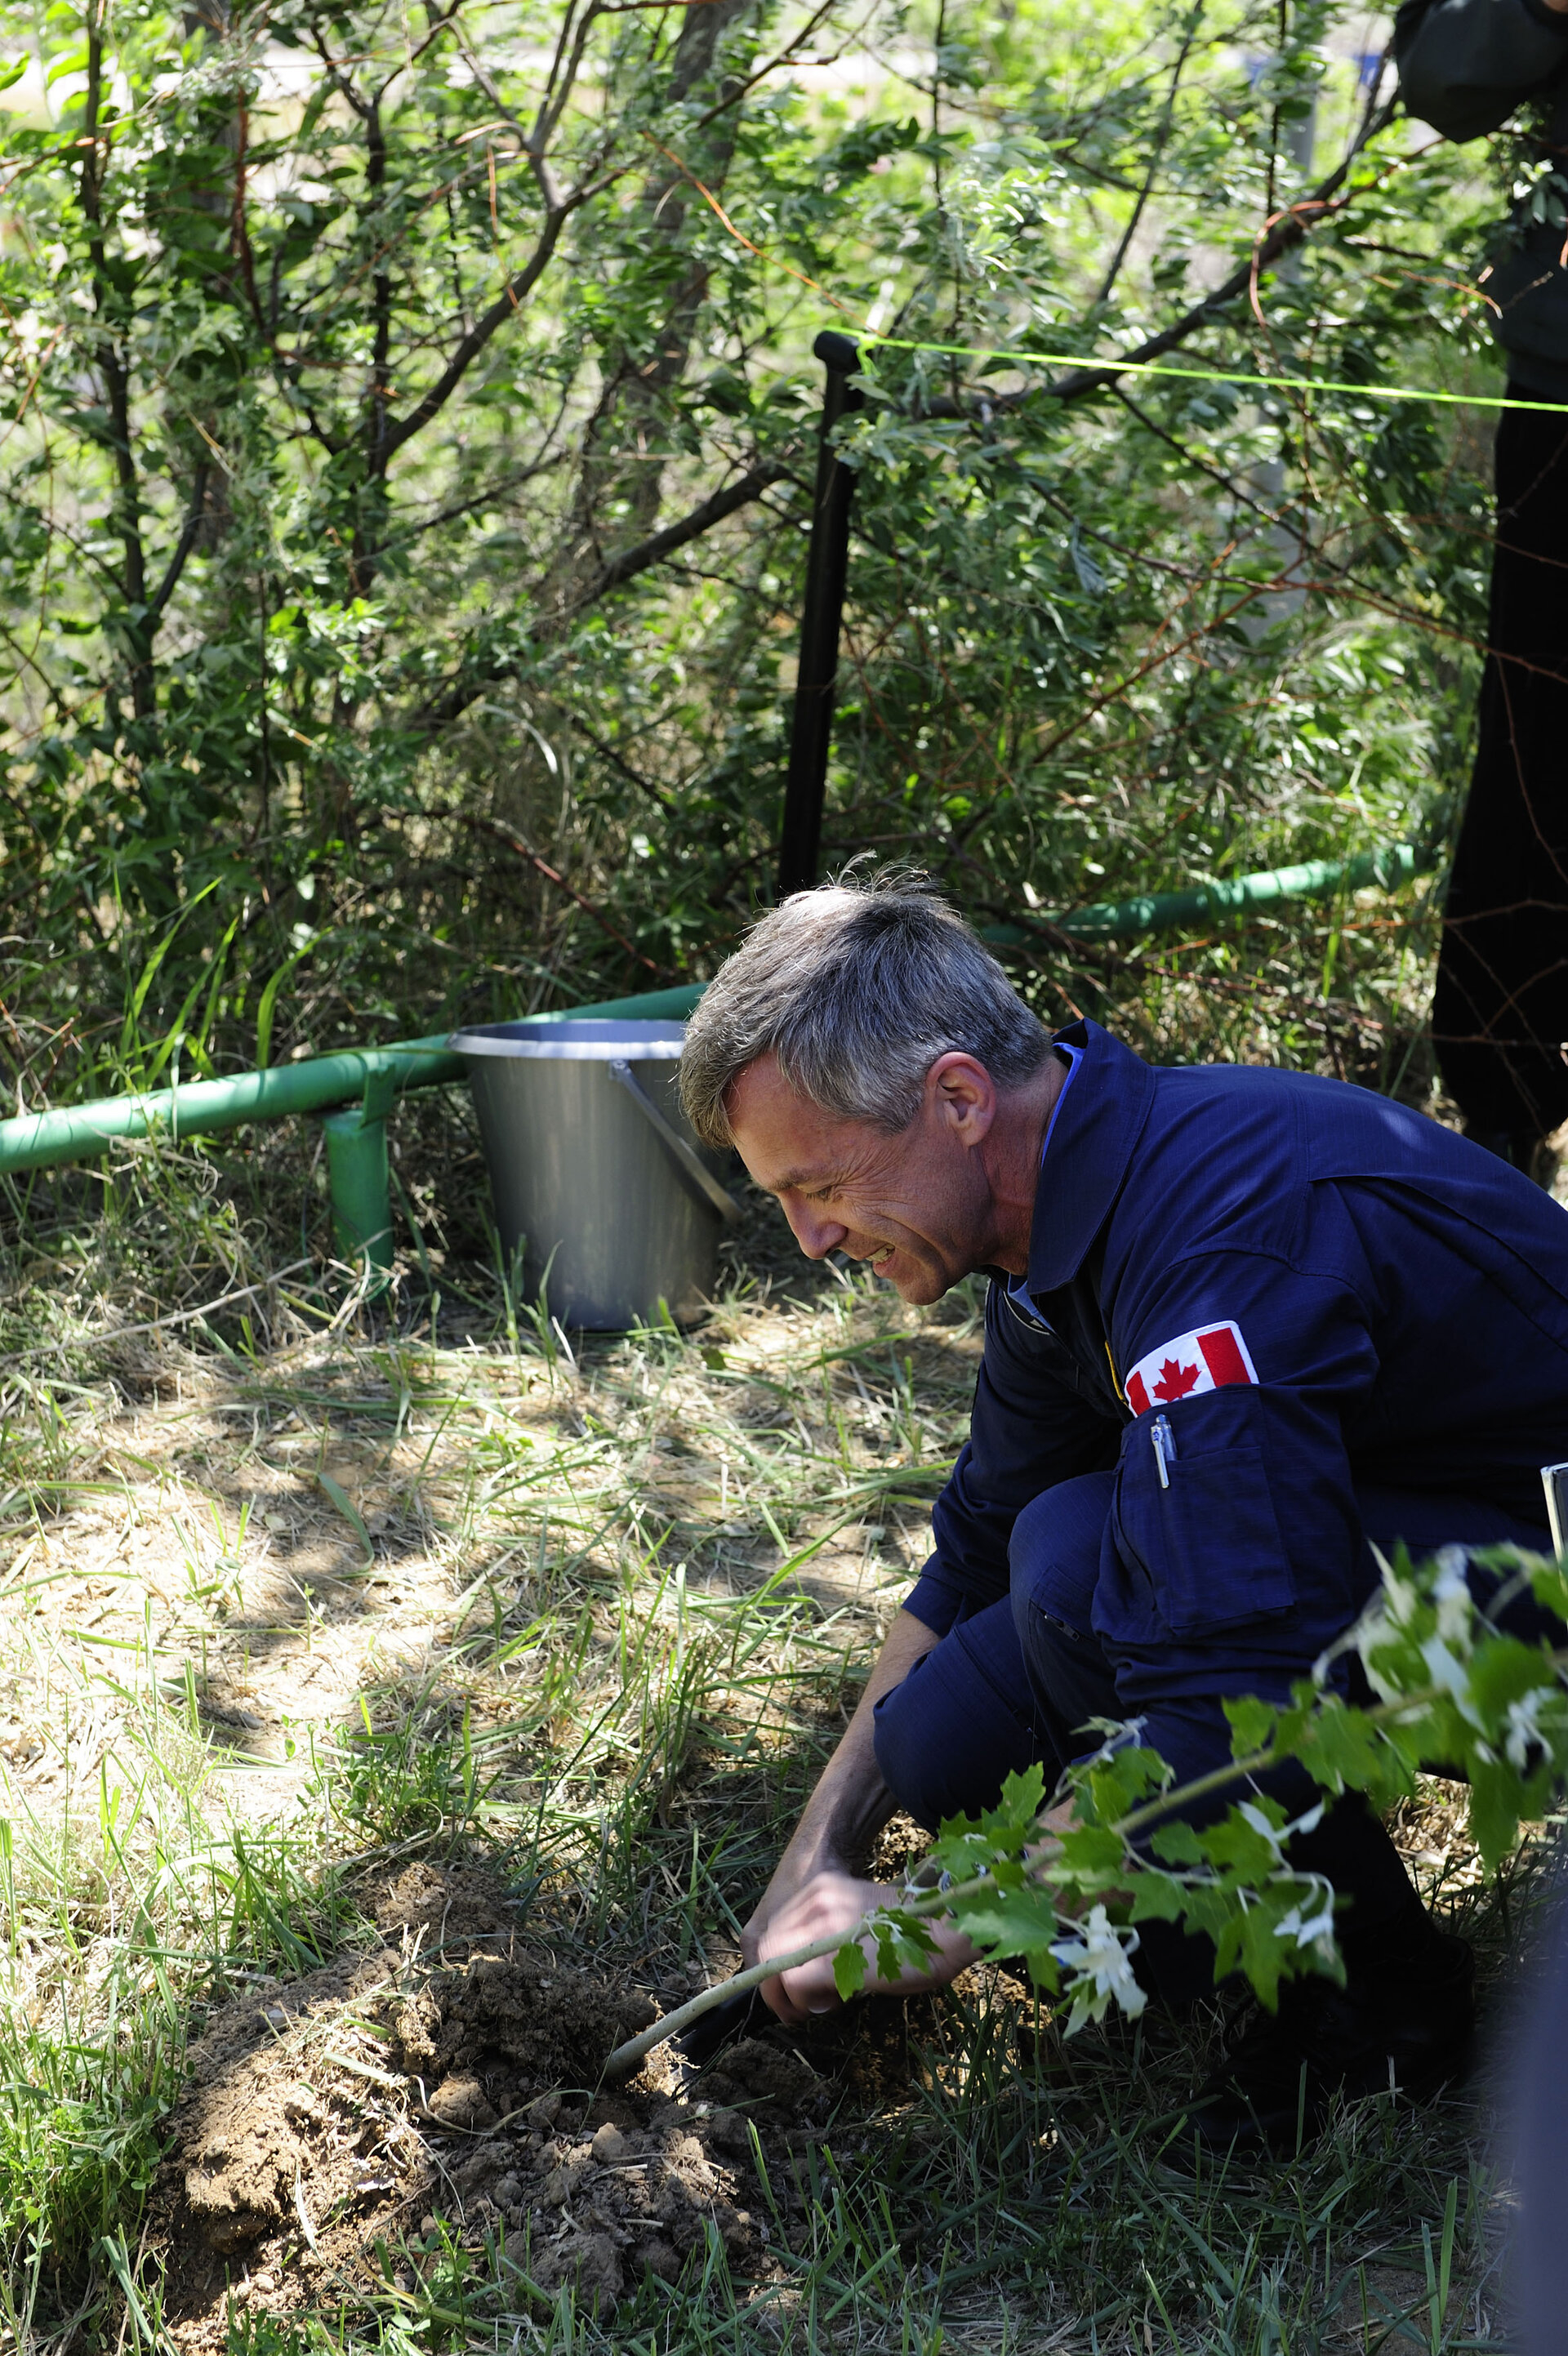 Soyuz TMA-15 crewmember Canadian Space Agency astronaut Robert Thirsk during the tree-planting ceremony